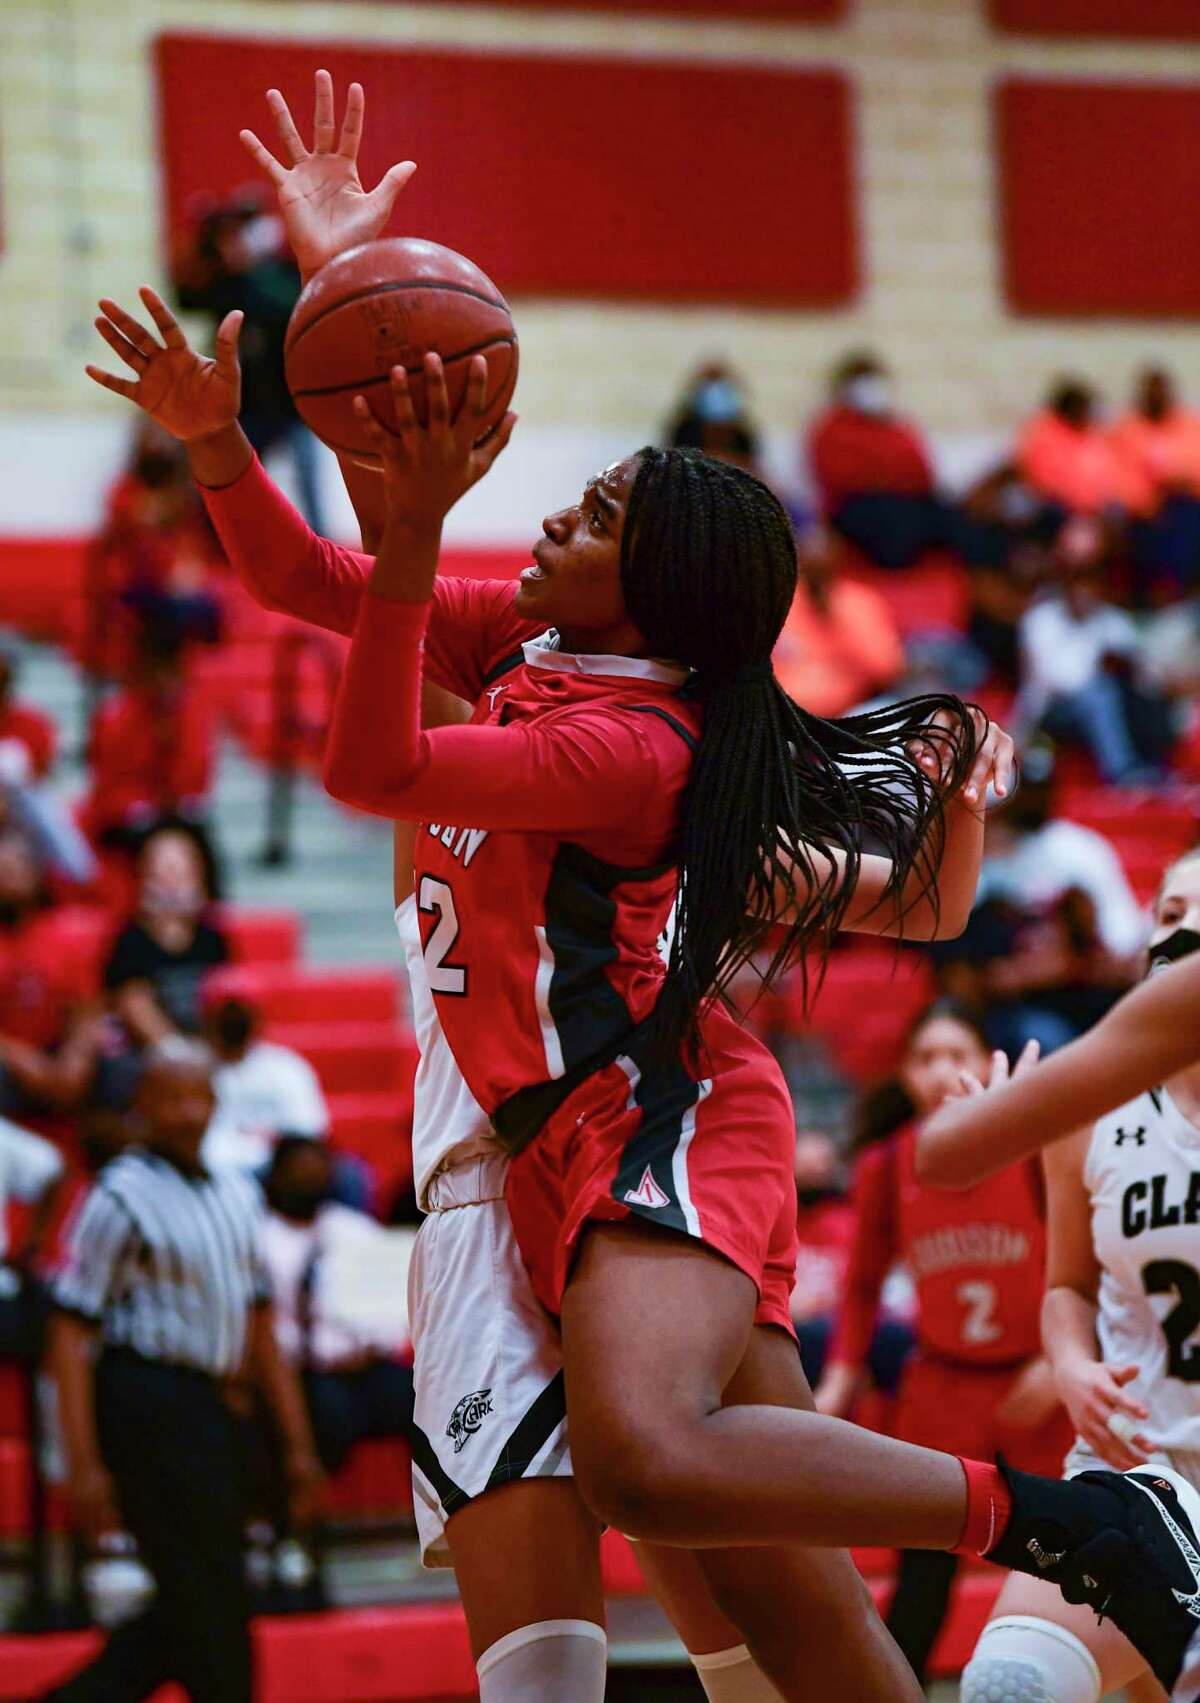 Amira Mabry of Judson shoots against Clark in girls basketball playoff action at Canyon High School on Wednesday, Feb. 24, 2021. Judson was victorious, 48-45.